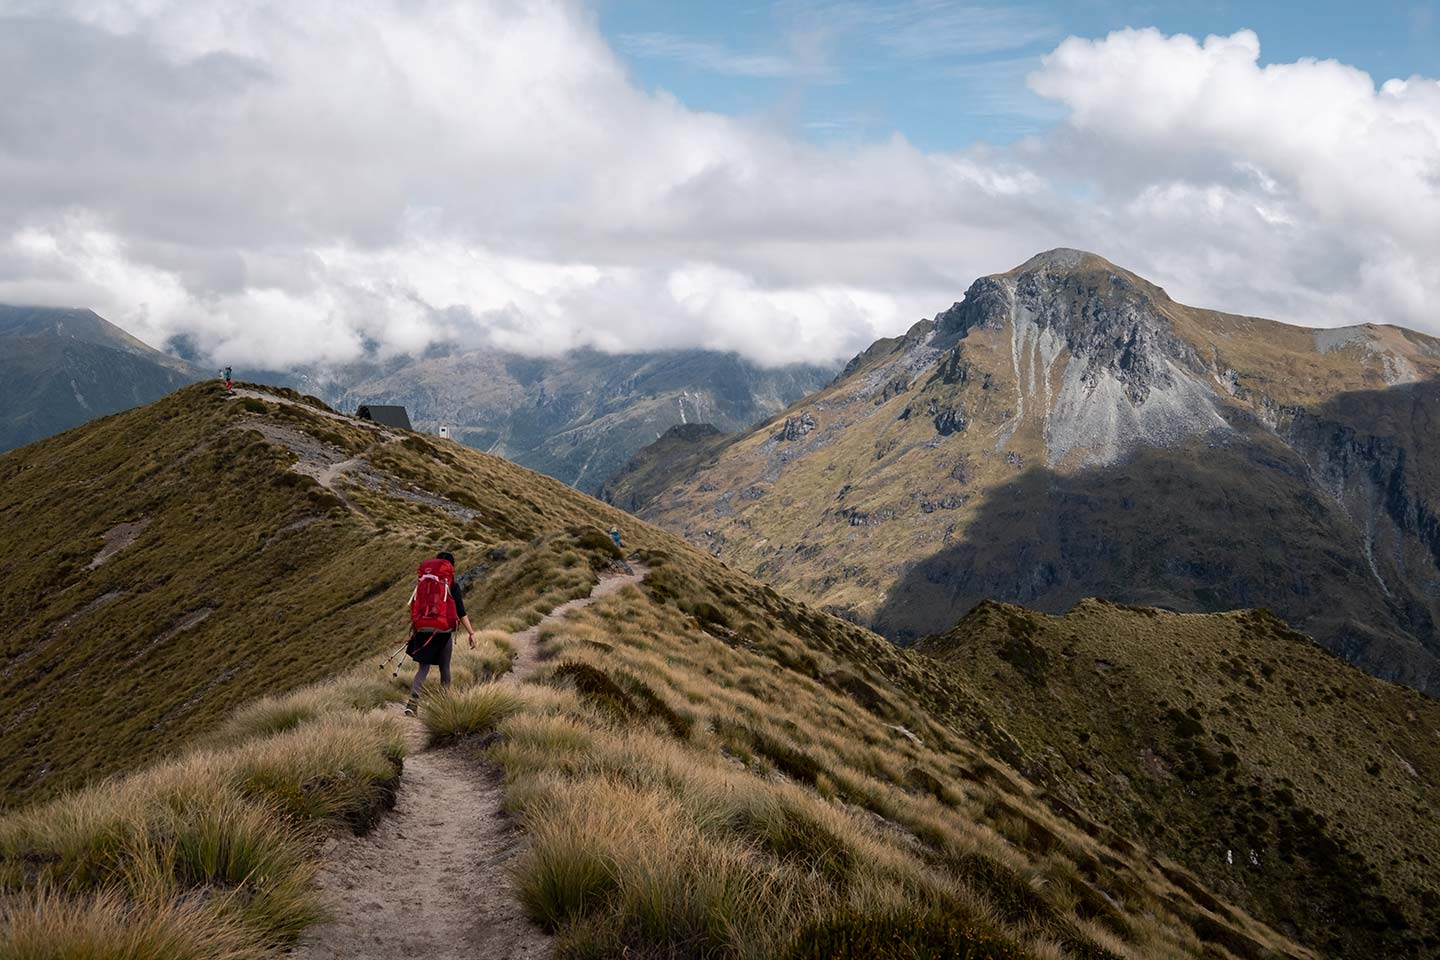 A woman with a large red backpack walks along a ridge line on the Kepler Track, in front of her are large mountains.